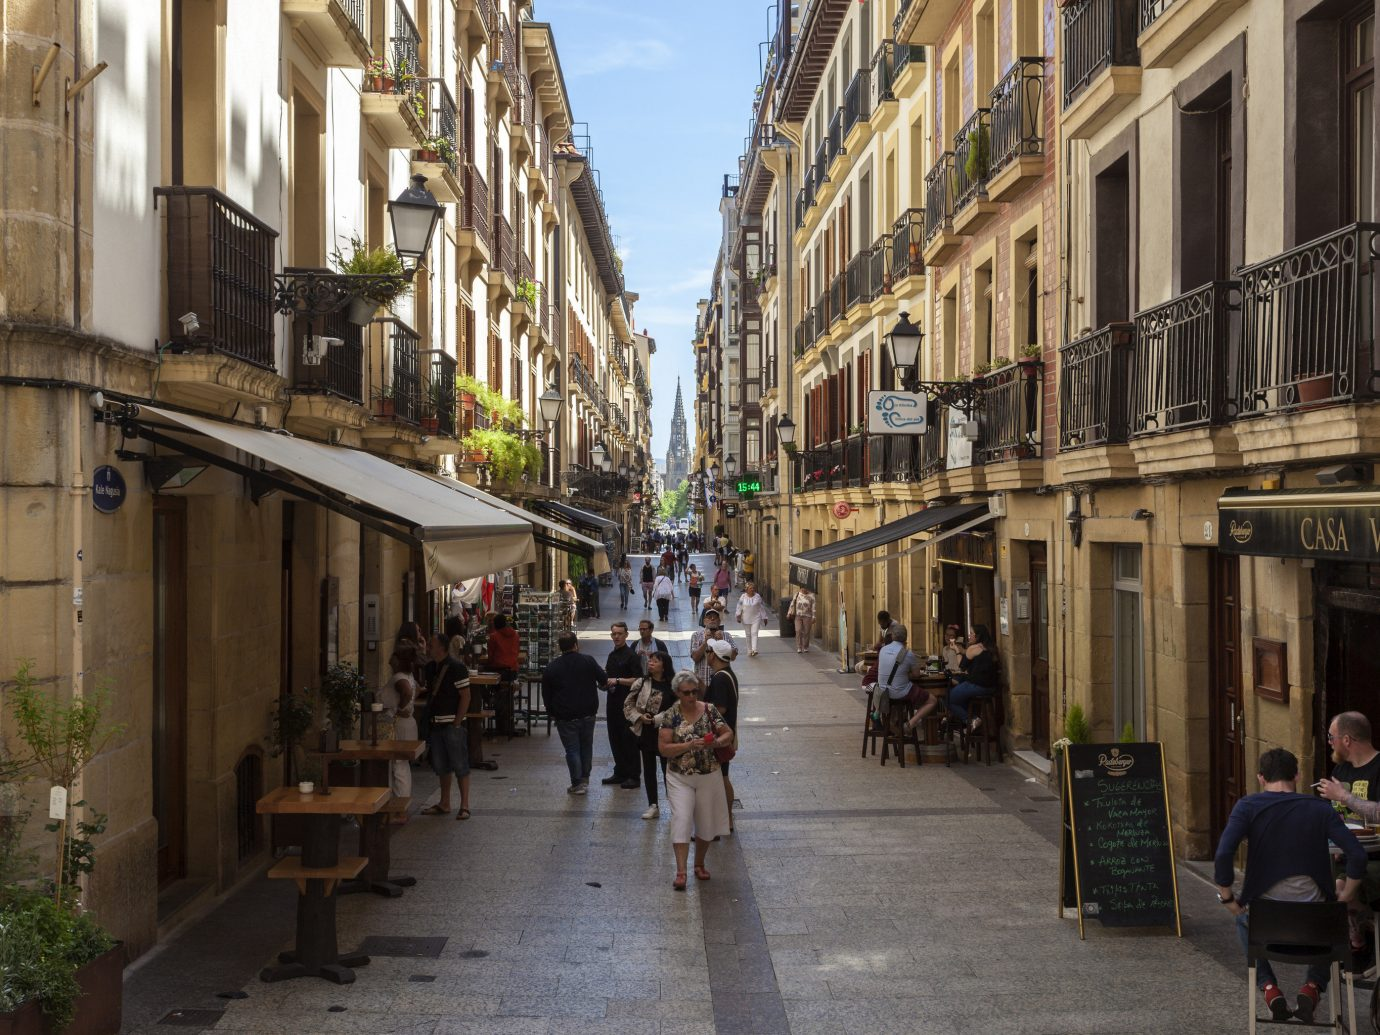 europe Spain Trip Ideas street Town neighbourhood alley City road pedestrian Downtown building facade metropolis